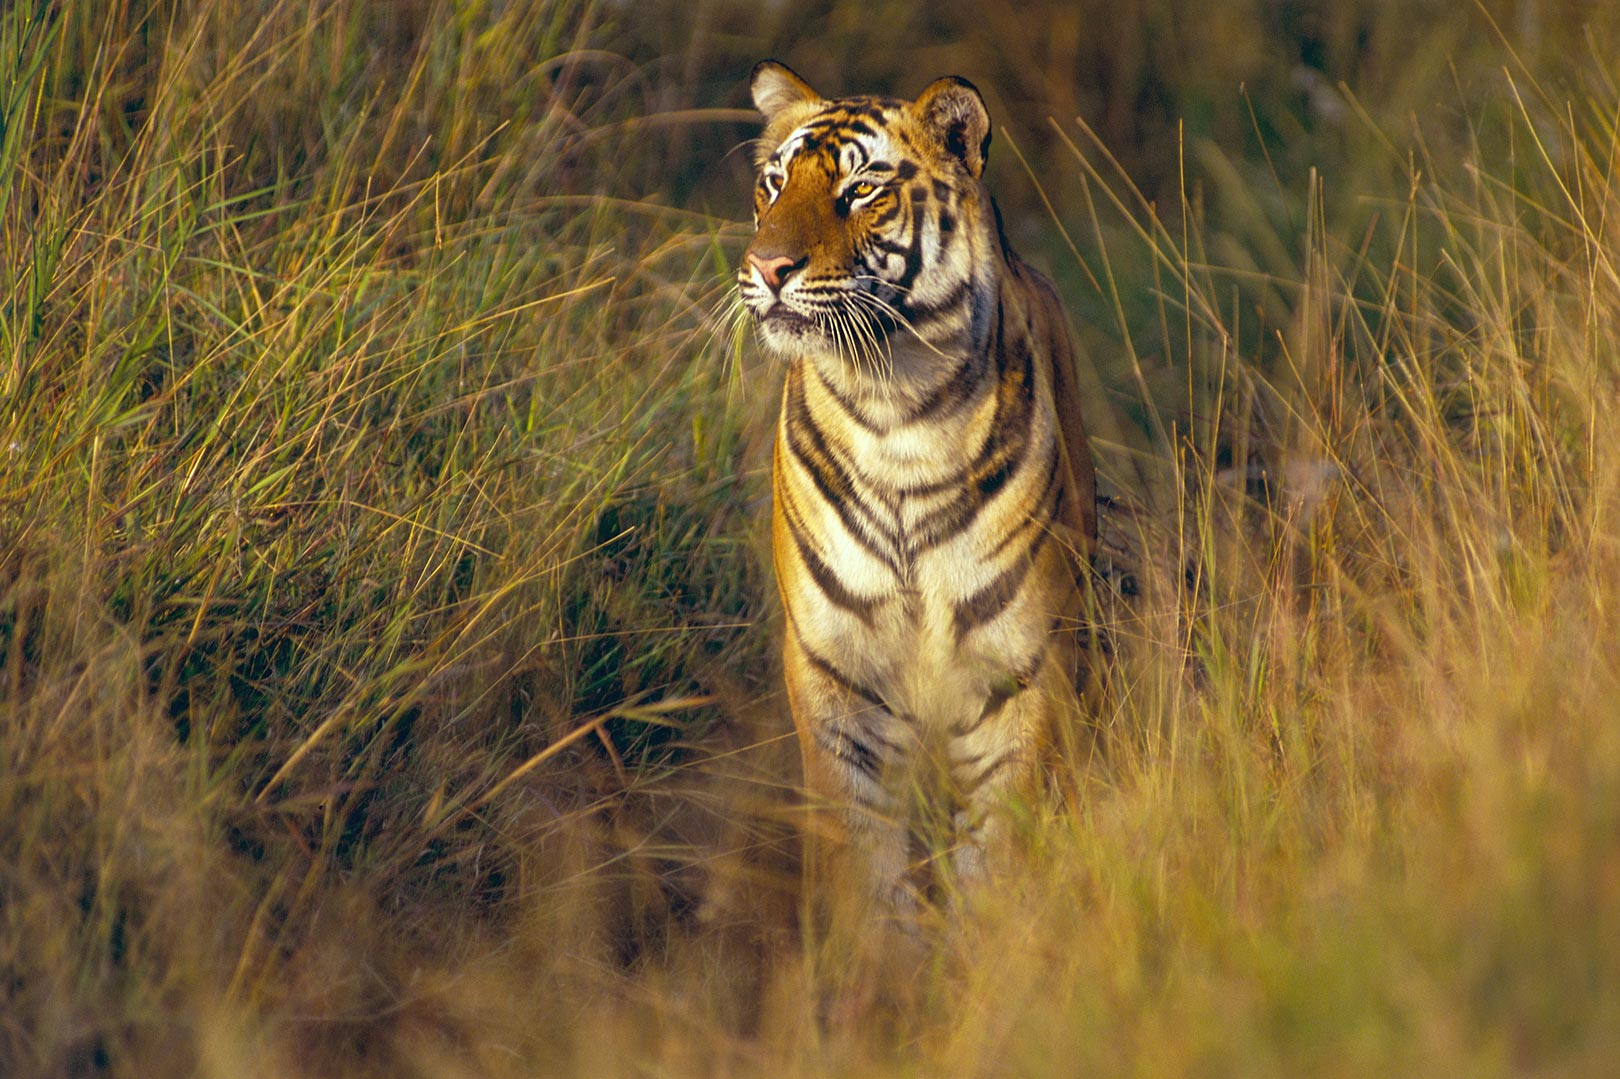 Picture of a tiger in Bandhavgarh National Park, India